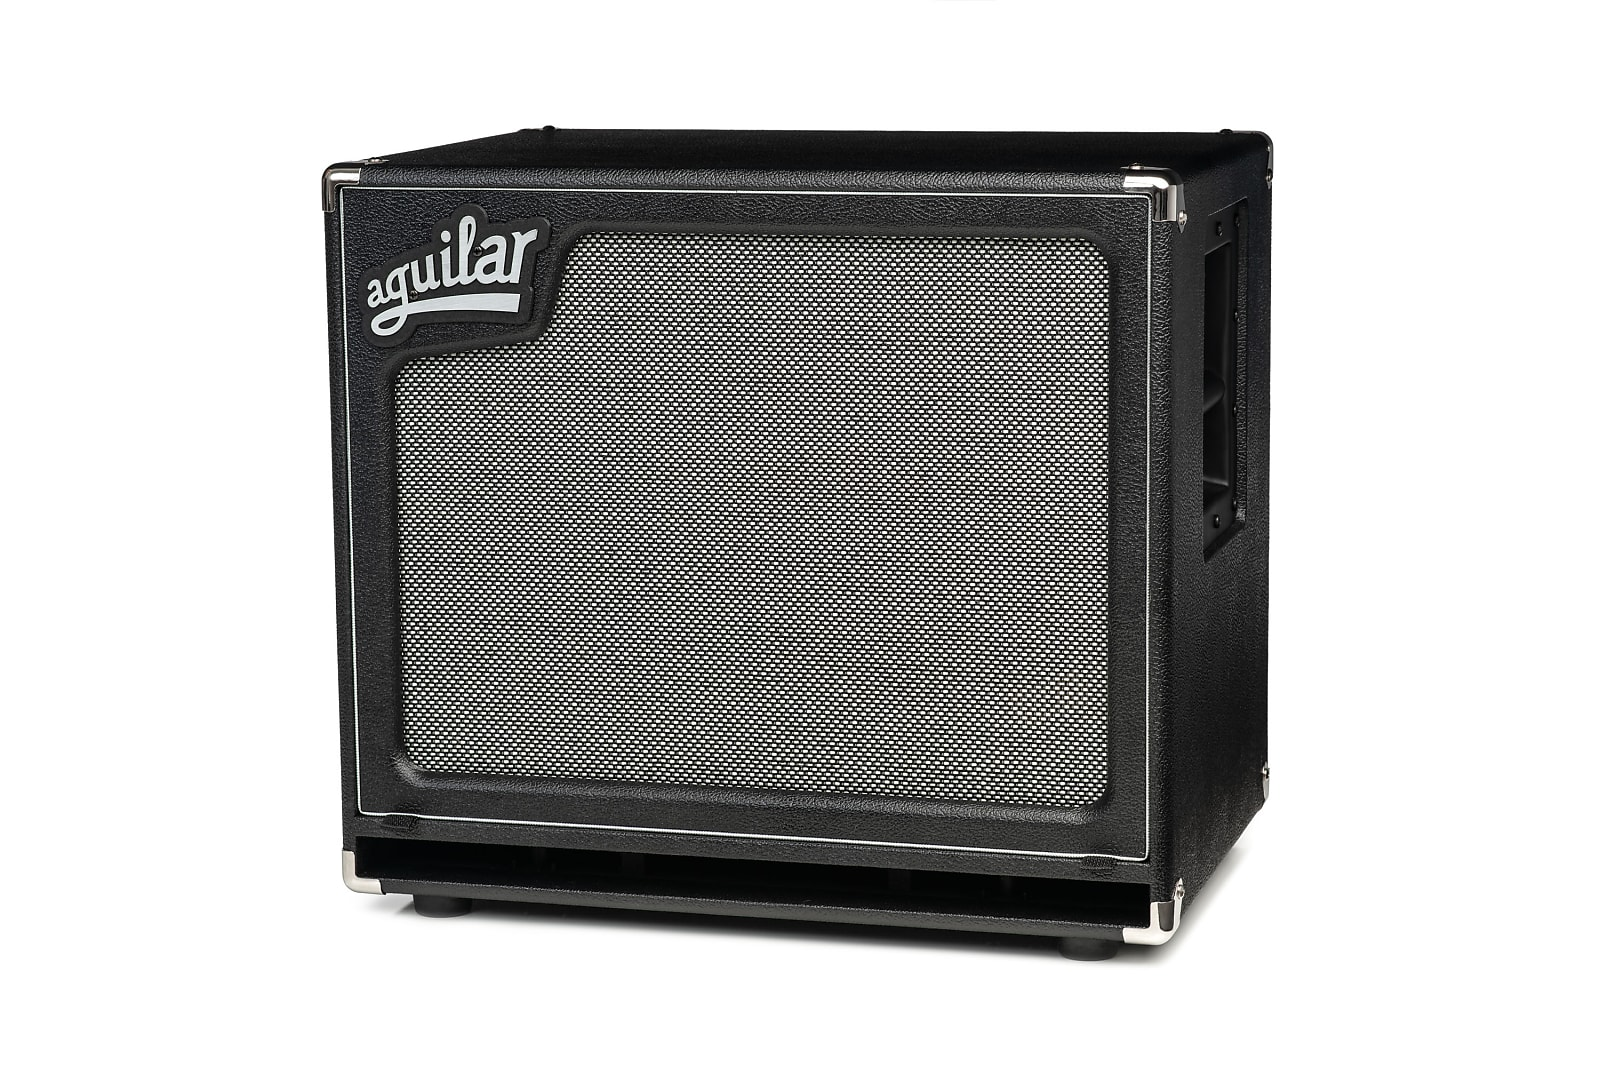 Aguilar SL 115, NEW Model, Just Released, Brand New in Box, First Available! *NOT Pre-Owned